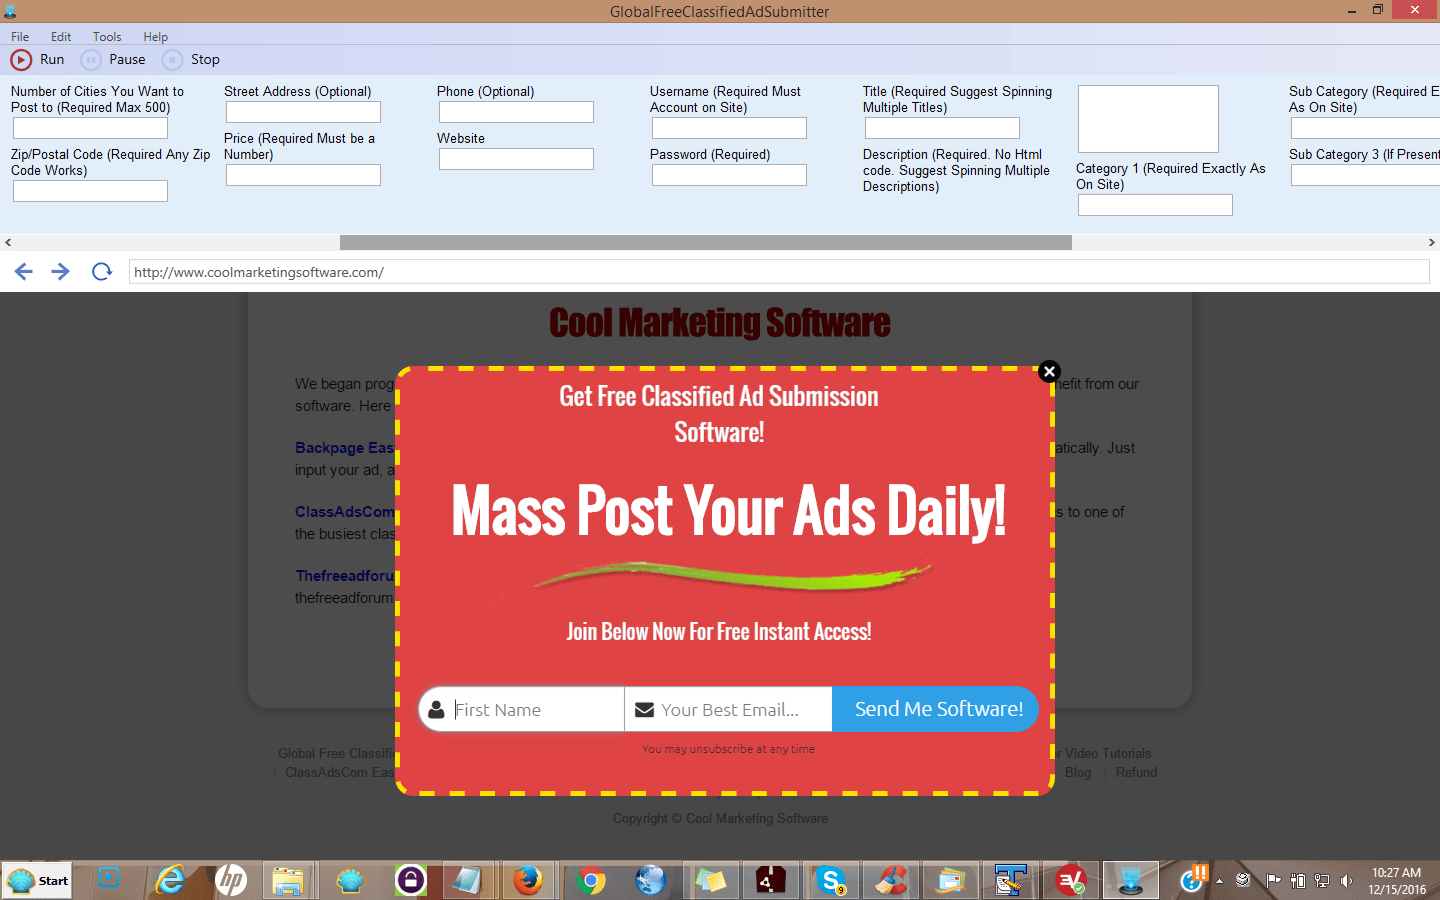 Global Free Classified Ad Submitter No More Ghosting of Ads